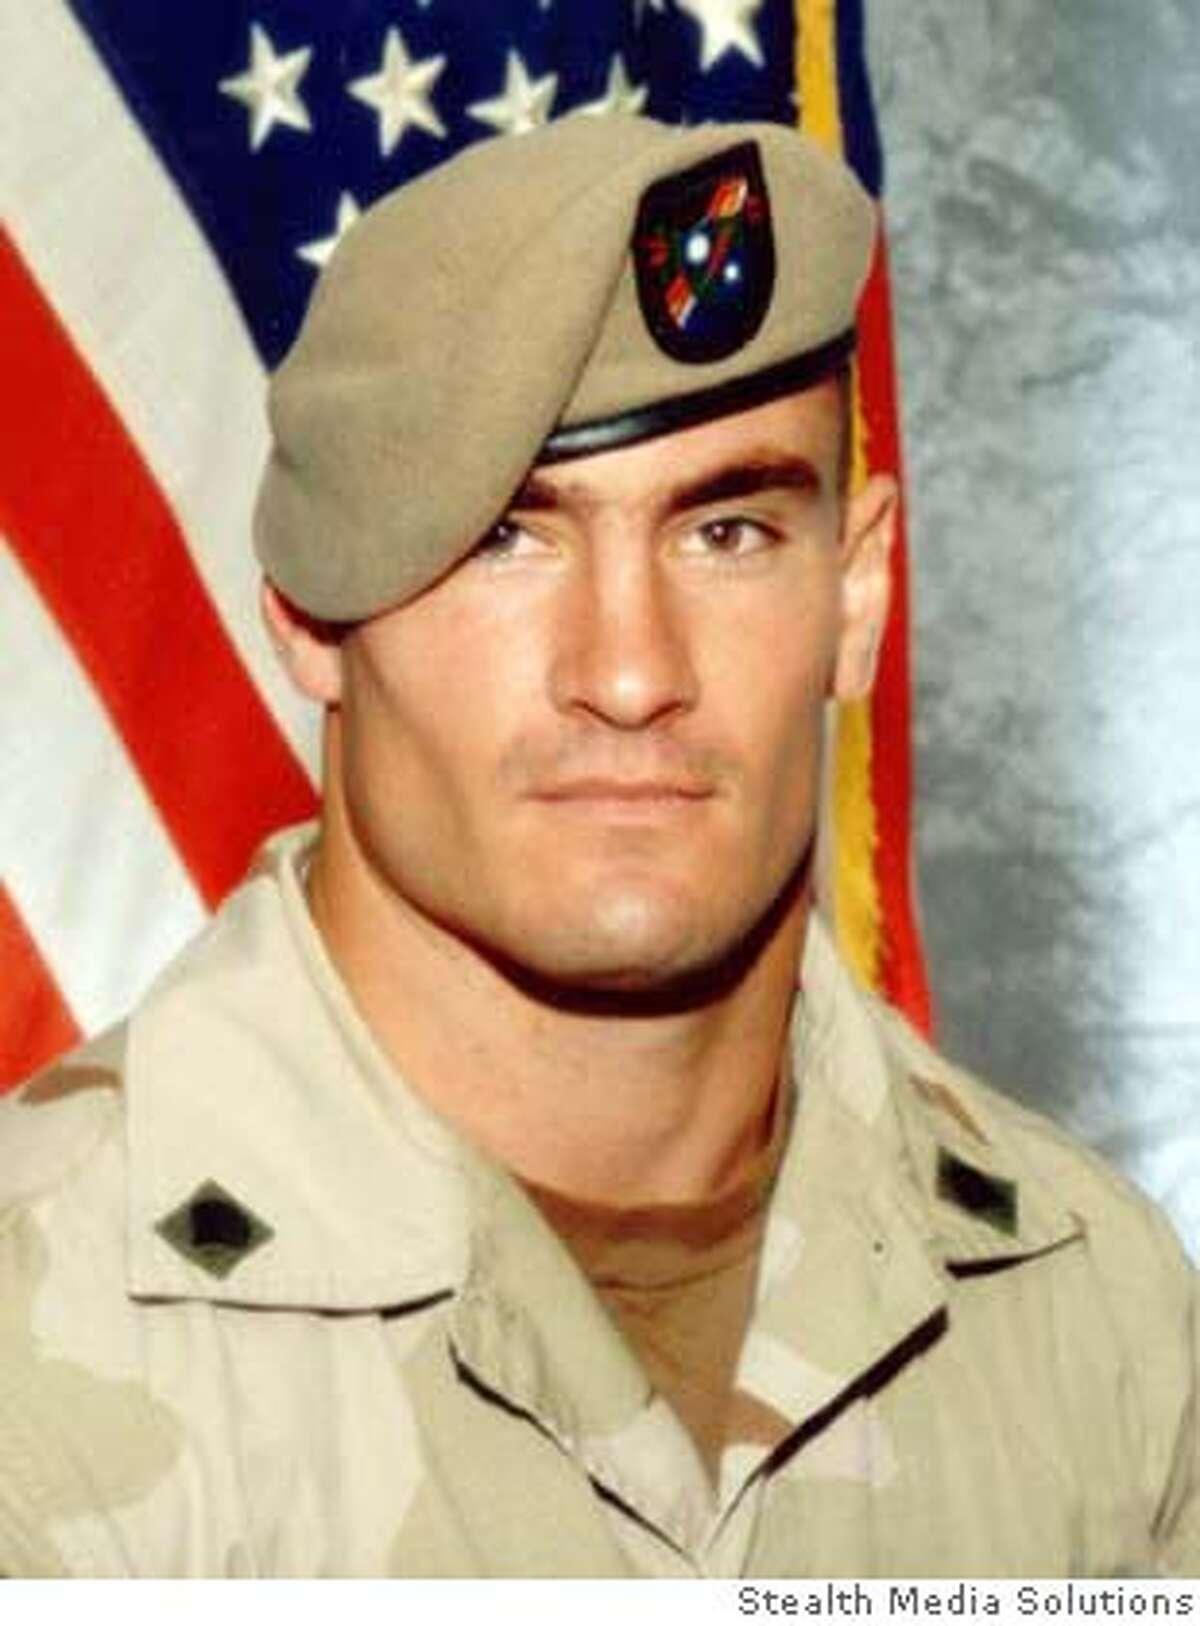 Former Arizona Cardinals safety Pat Tillman, photographed in Puyallup, Washington in this June 2003 file photograph was killed in Afghanistan on April 22 U.S. officials said April 23, 2004. Tillman, 27, was serving with the U.S. Army Rangers. /Photography Plus C/O Stealth Media Solutions/Handout FOR EDITORIAL USE ONLY 0